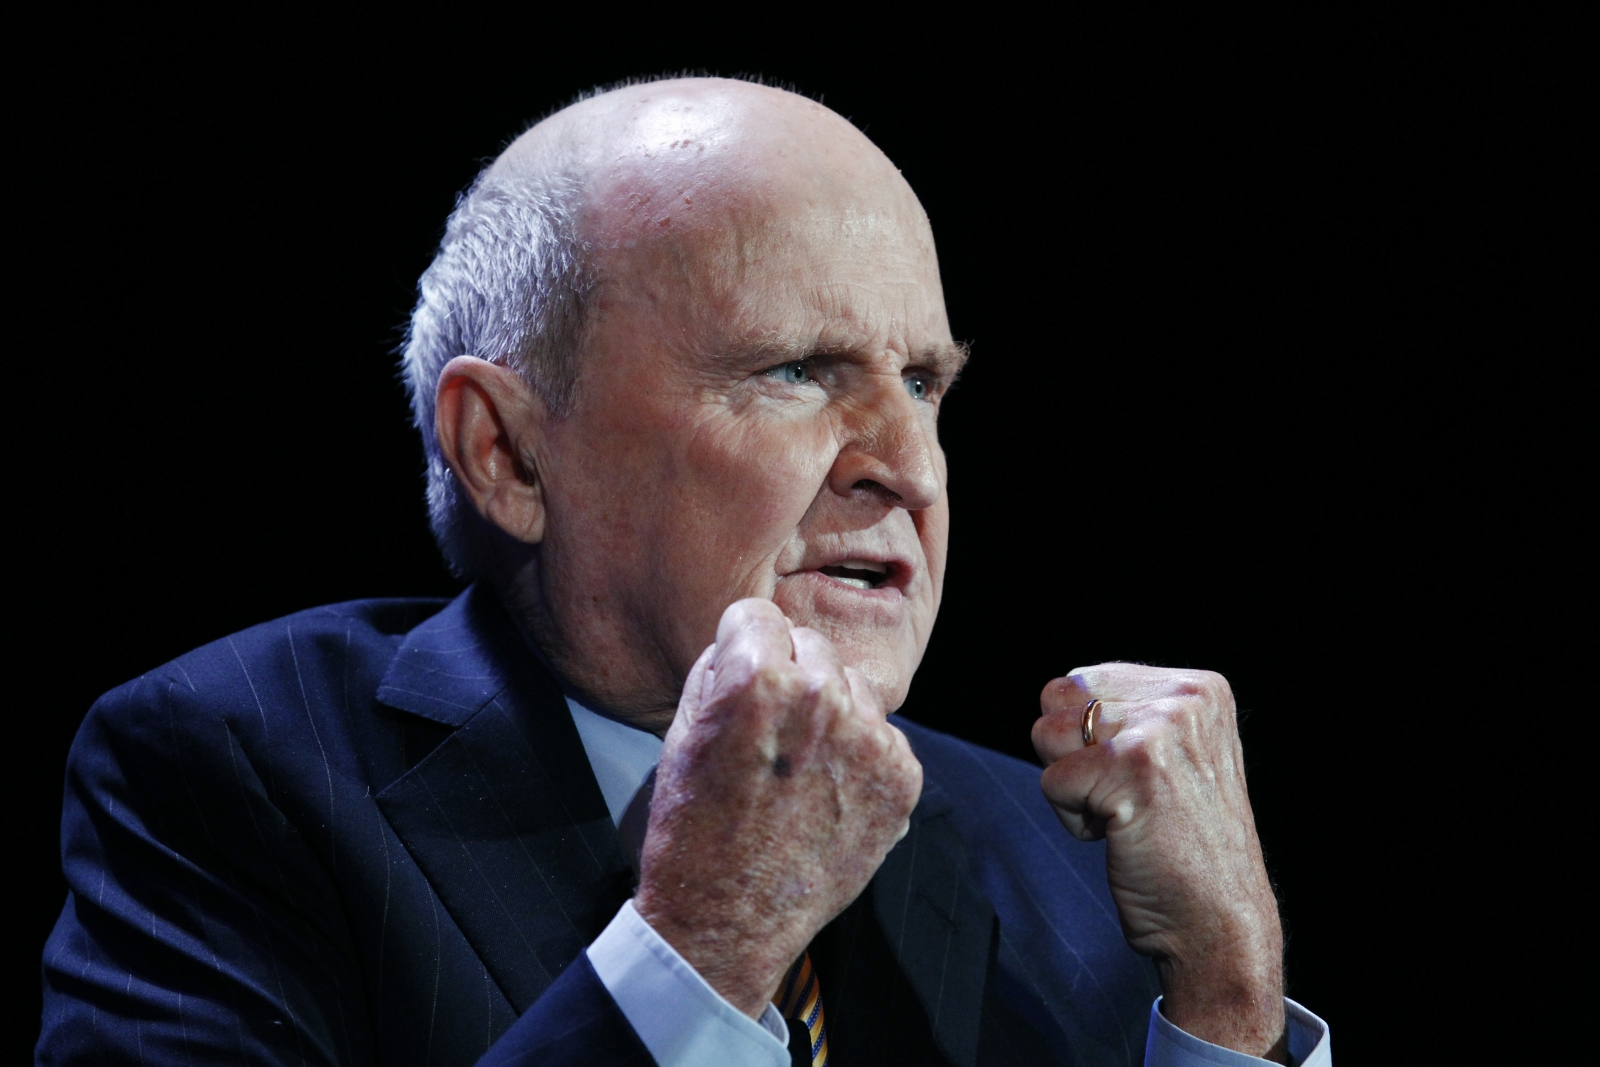 Jane left Jack Welch and received a divorce settlement that was reported to be worth $150m